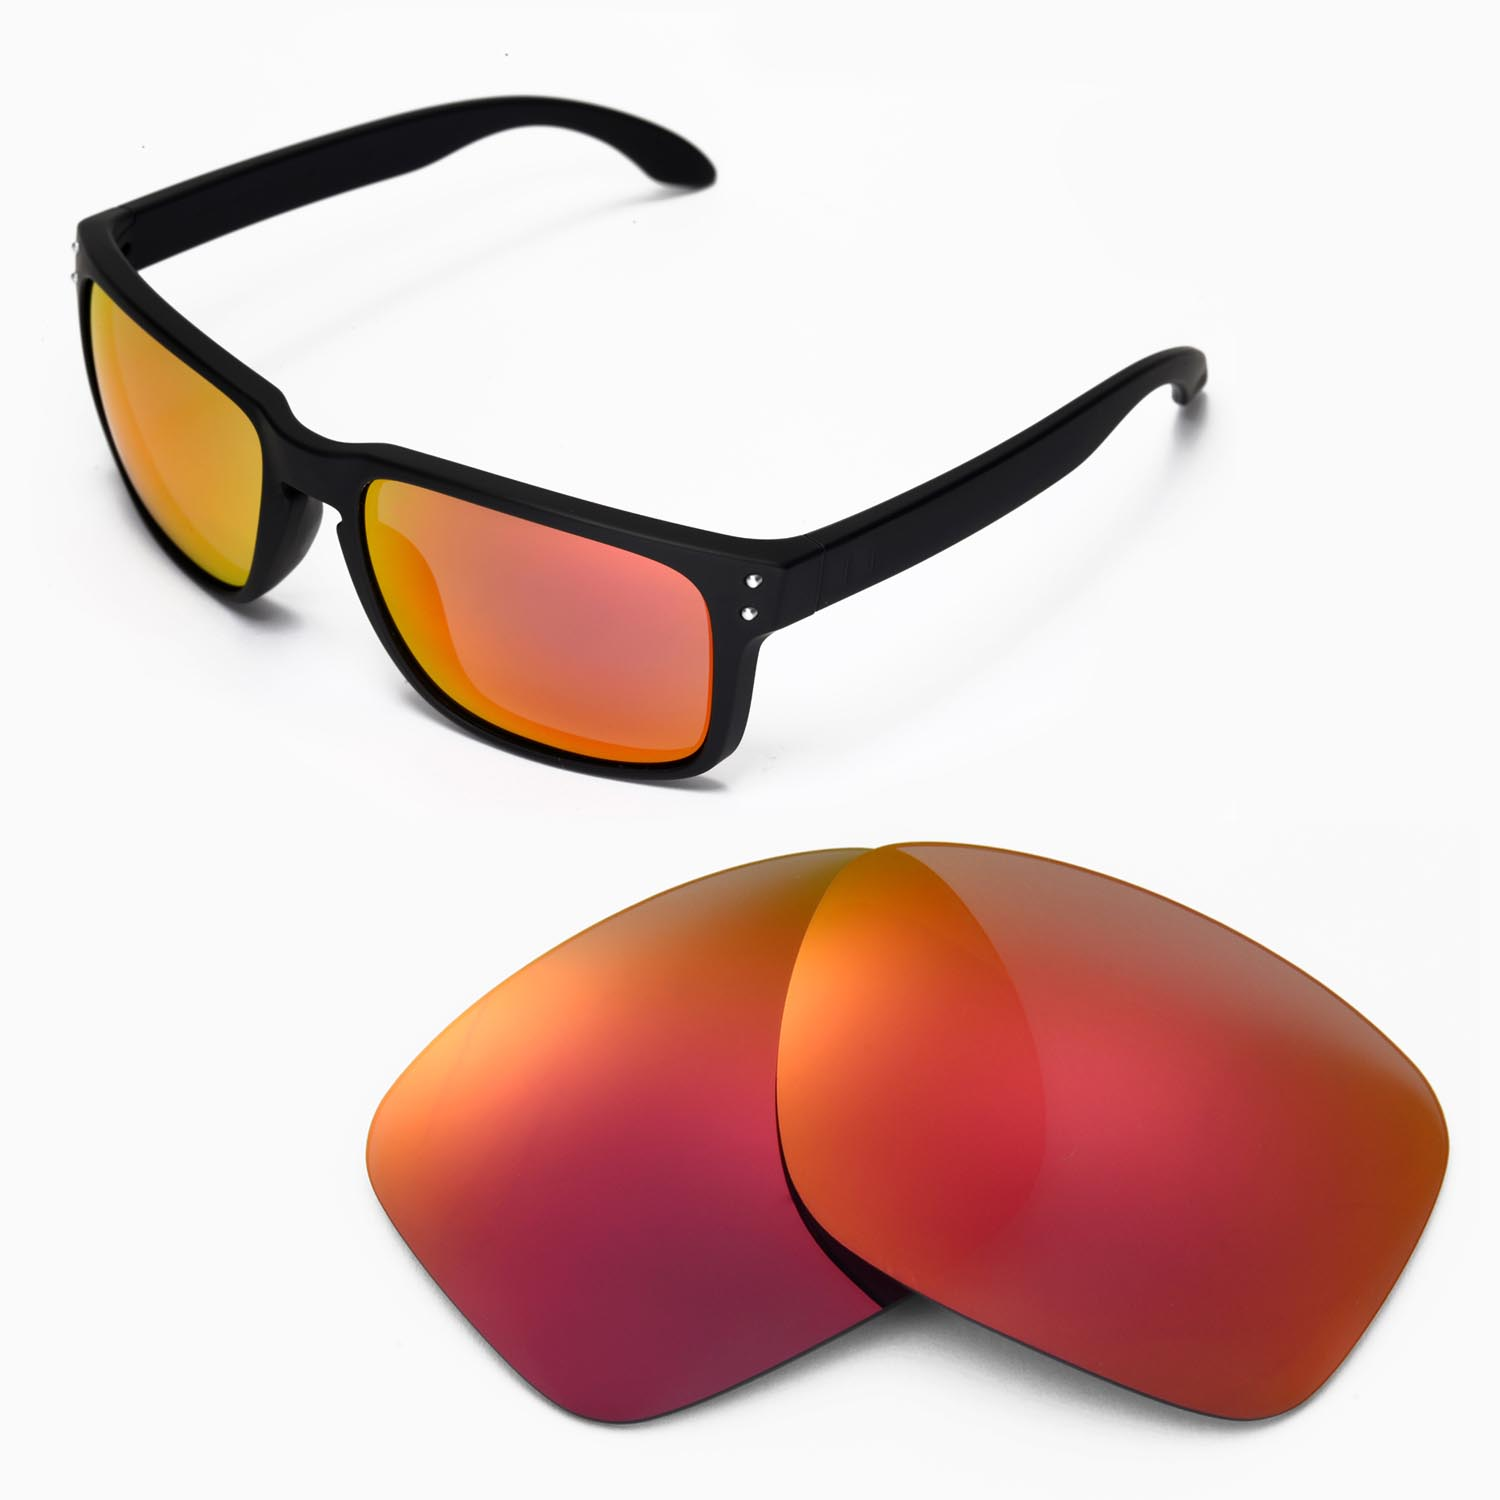 4c35d3fd49 New Walleva Polarized Fire Red Lenses For Oakley Holbrook ...